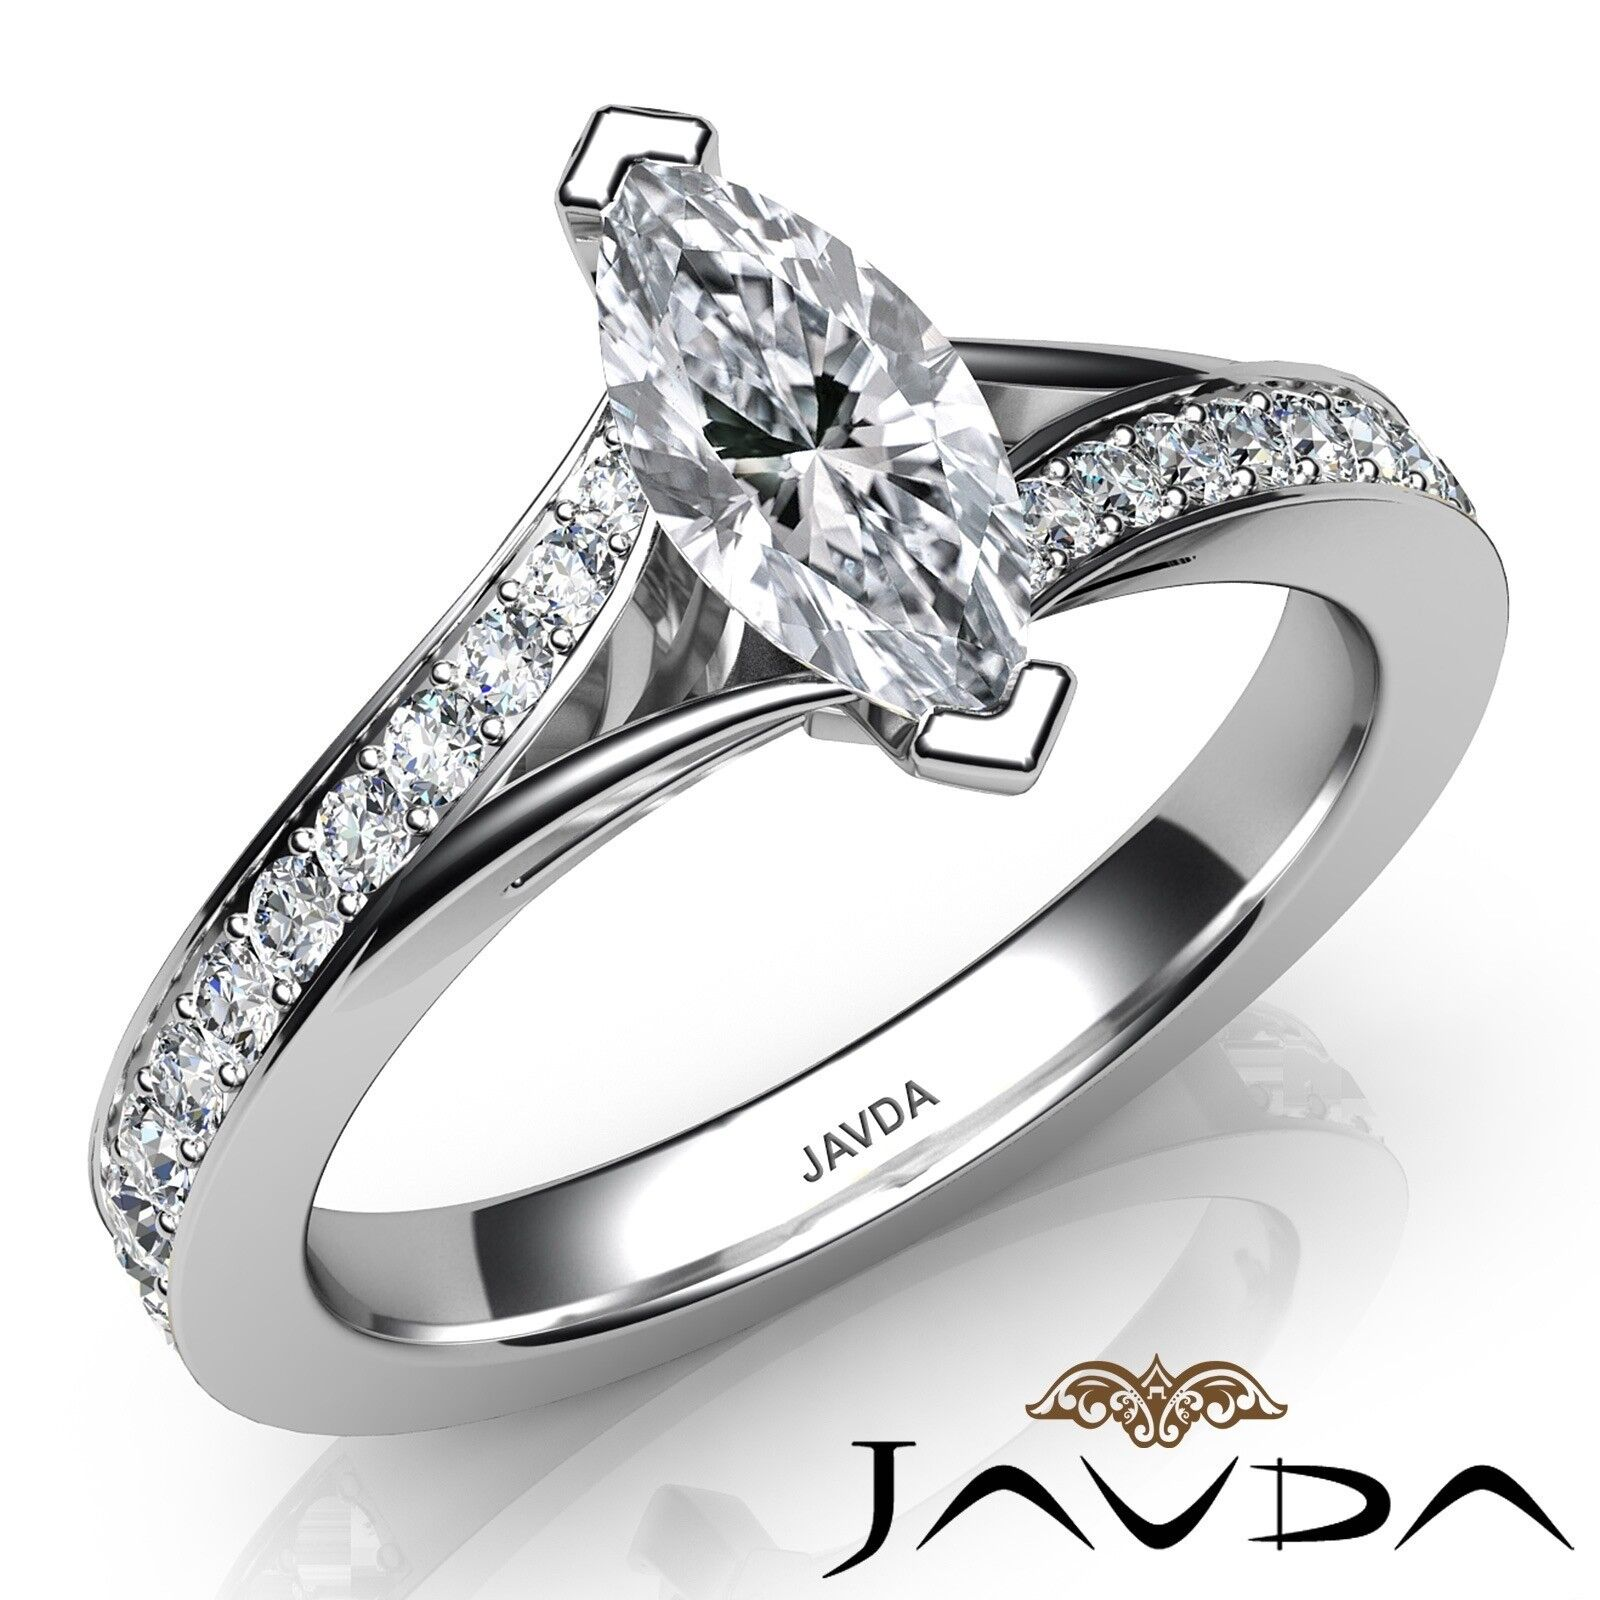 1.17ctw Classic Sidestone Marquise Diamond Engagement Ring GIA D-SI1 White Gold